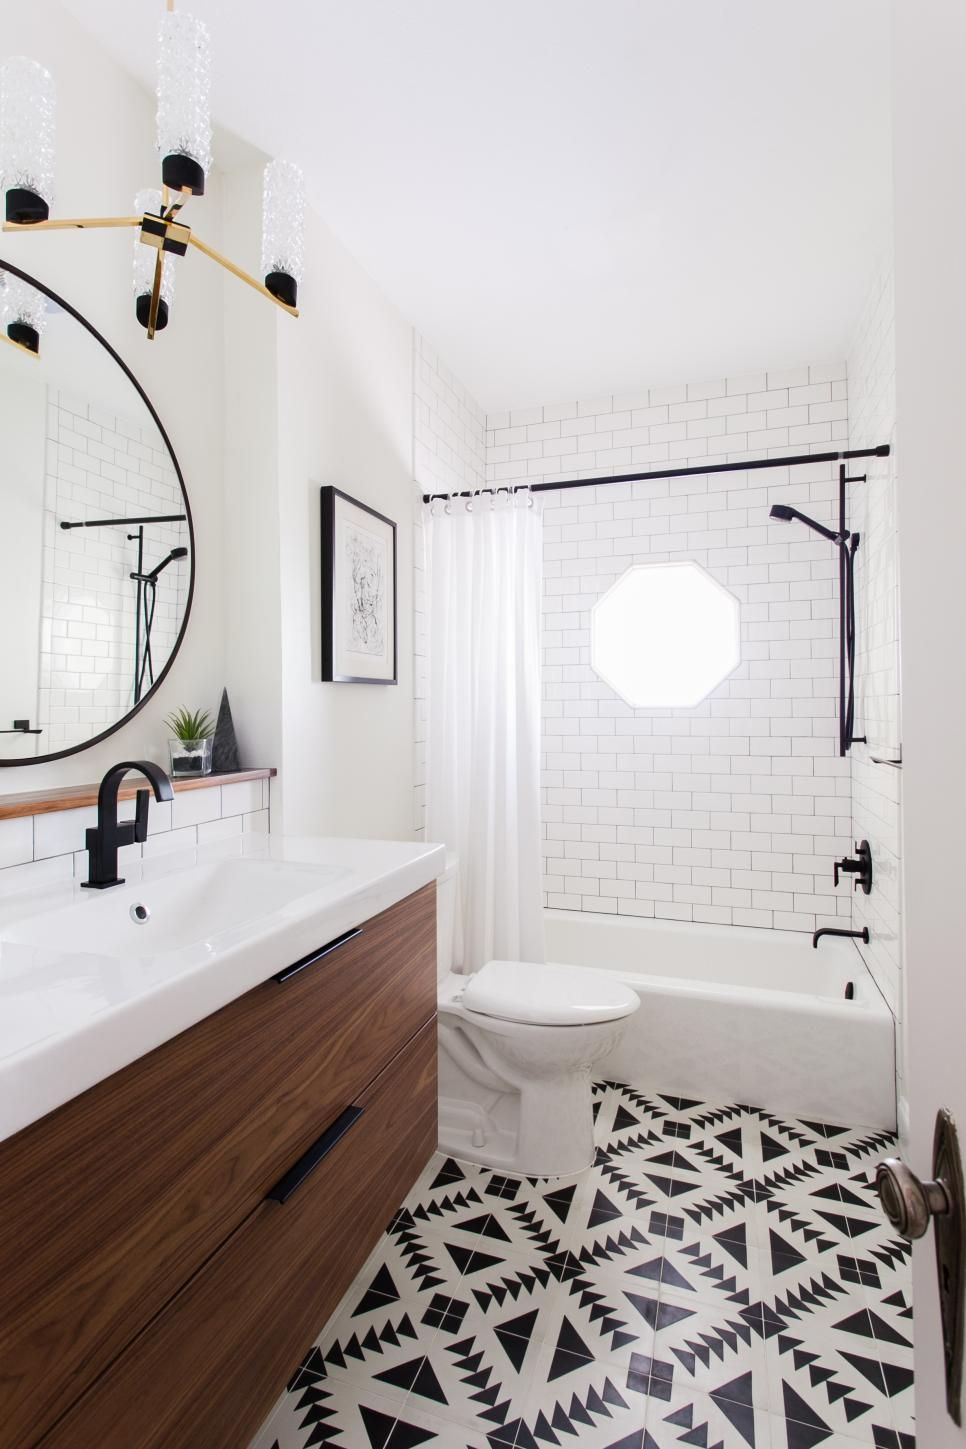 Graphic Geometric Patterned Floor Tile Serves As The Focal Point And Color Palette Inspiration Fo Bathroom Inspiration Small Bathroom Design Bathrooms Remodel